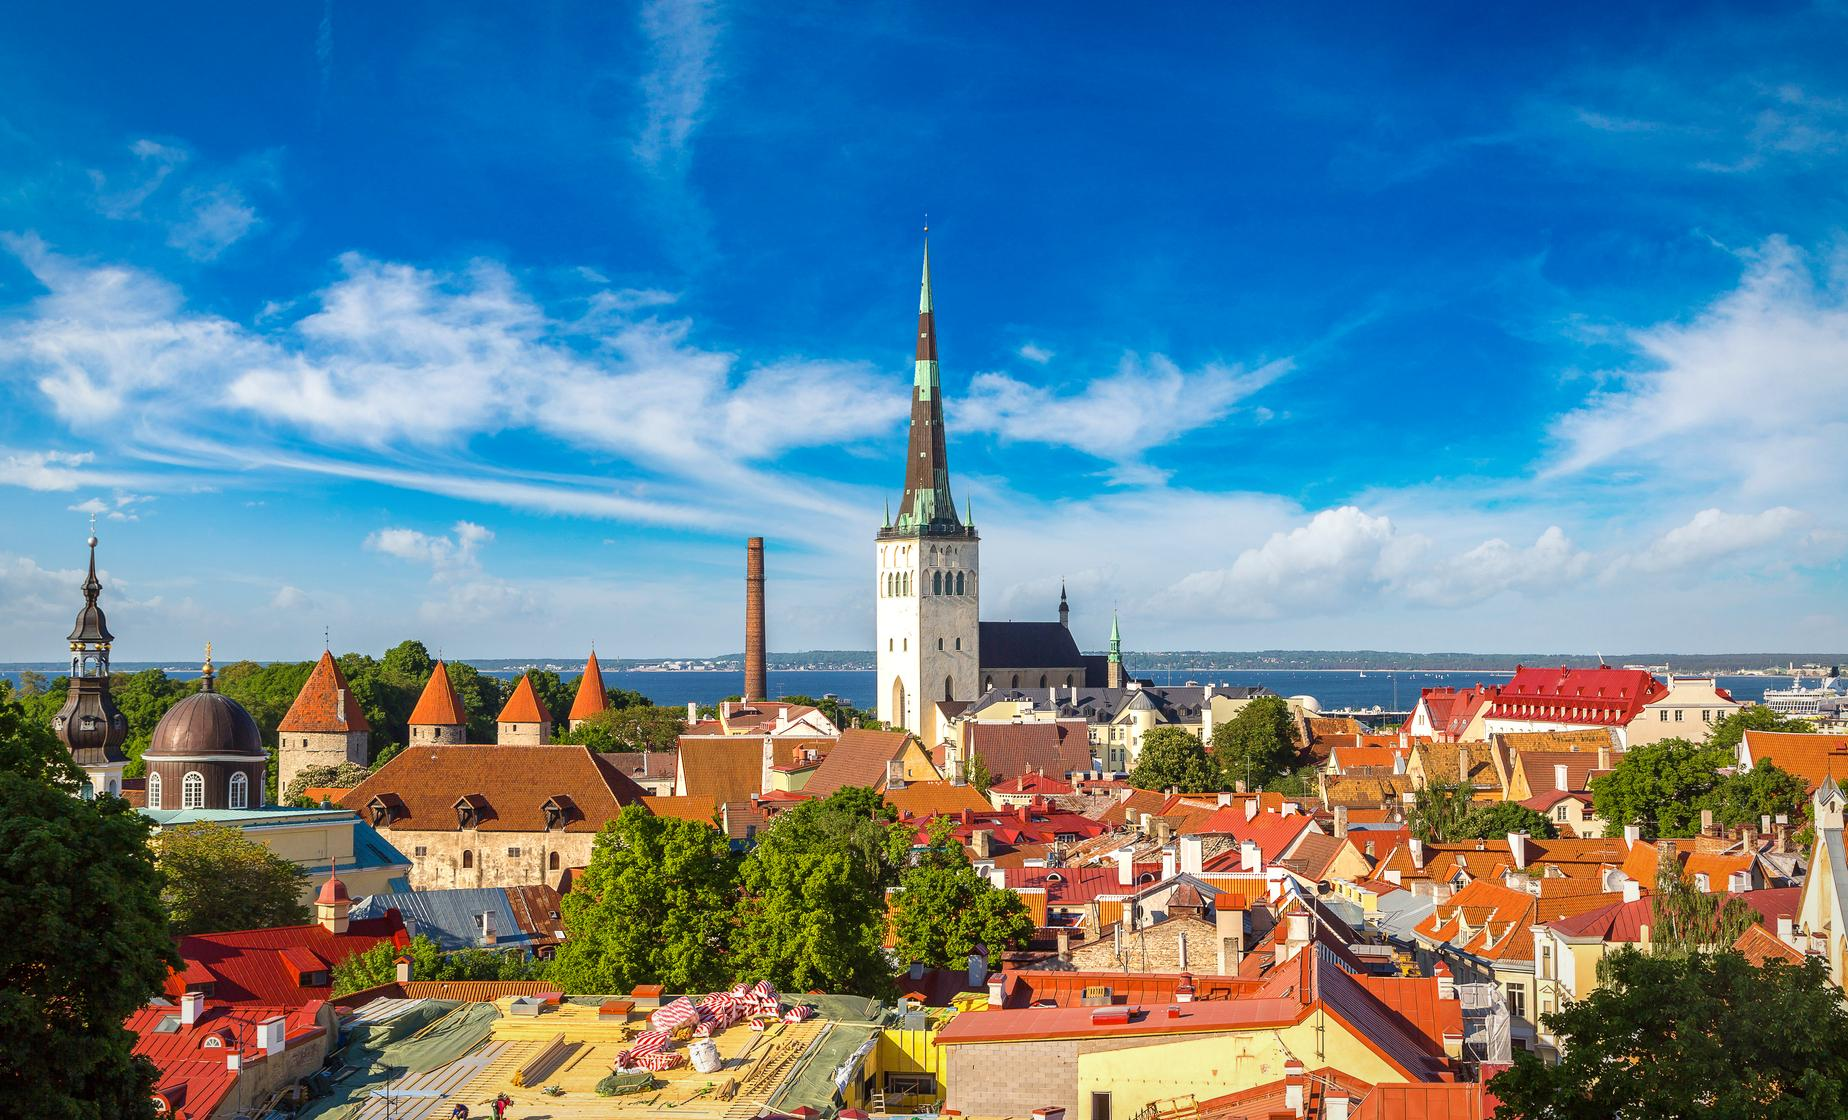 Private Highlights of Tallinn